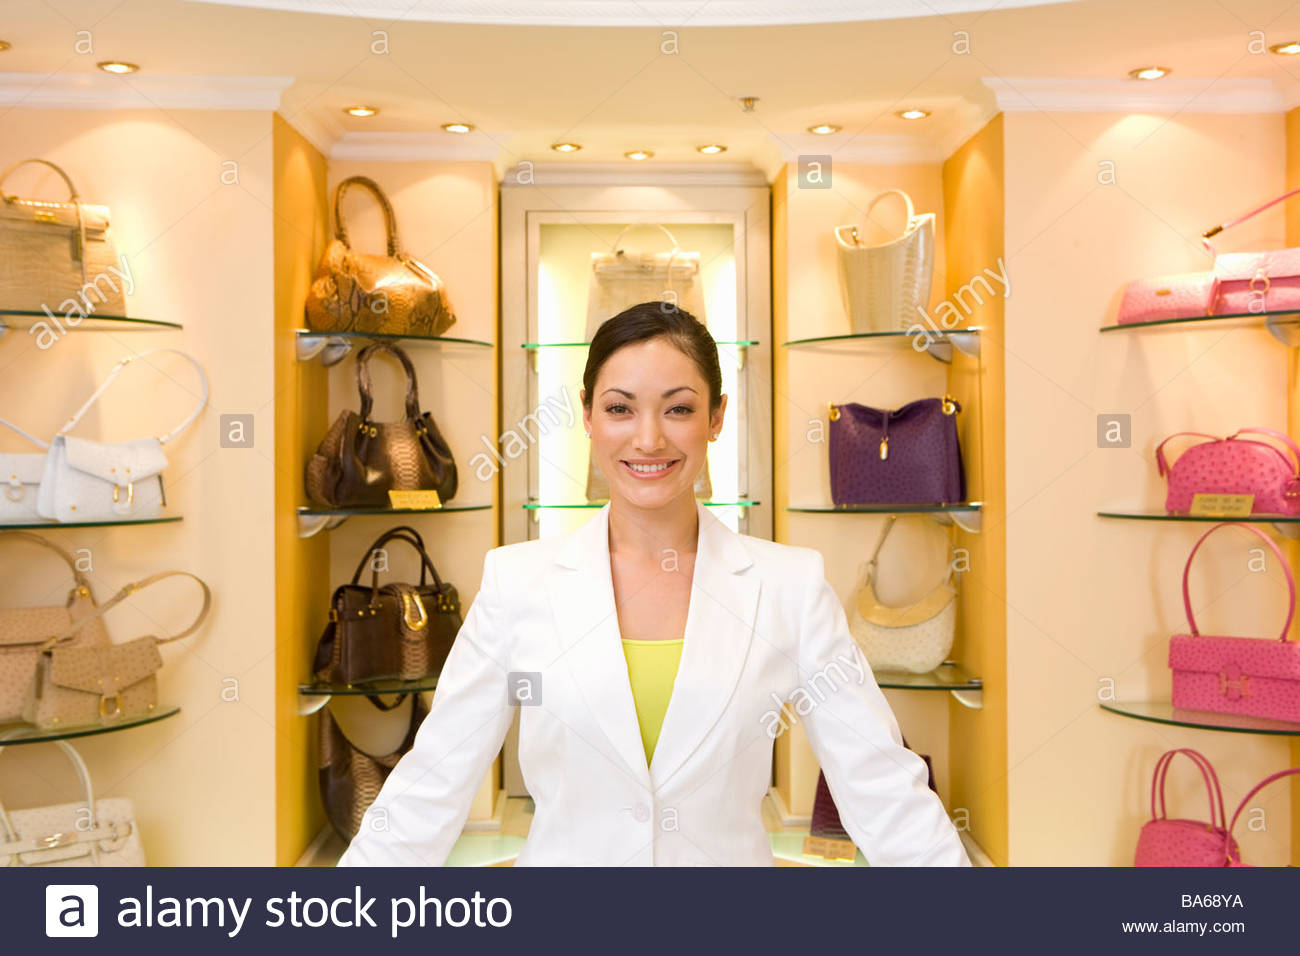 Saleswoman posing in front of purses Stock Photo